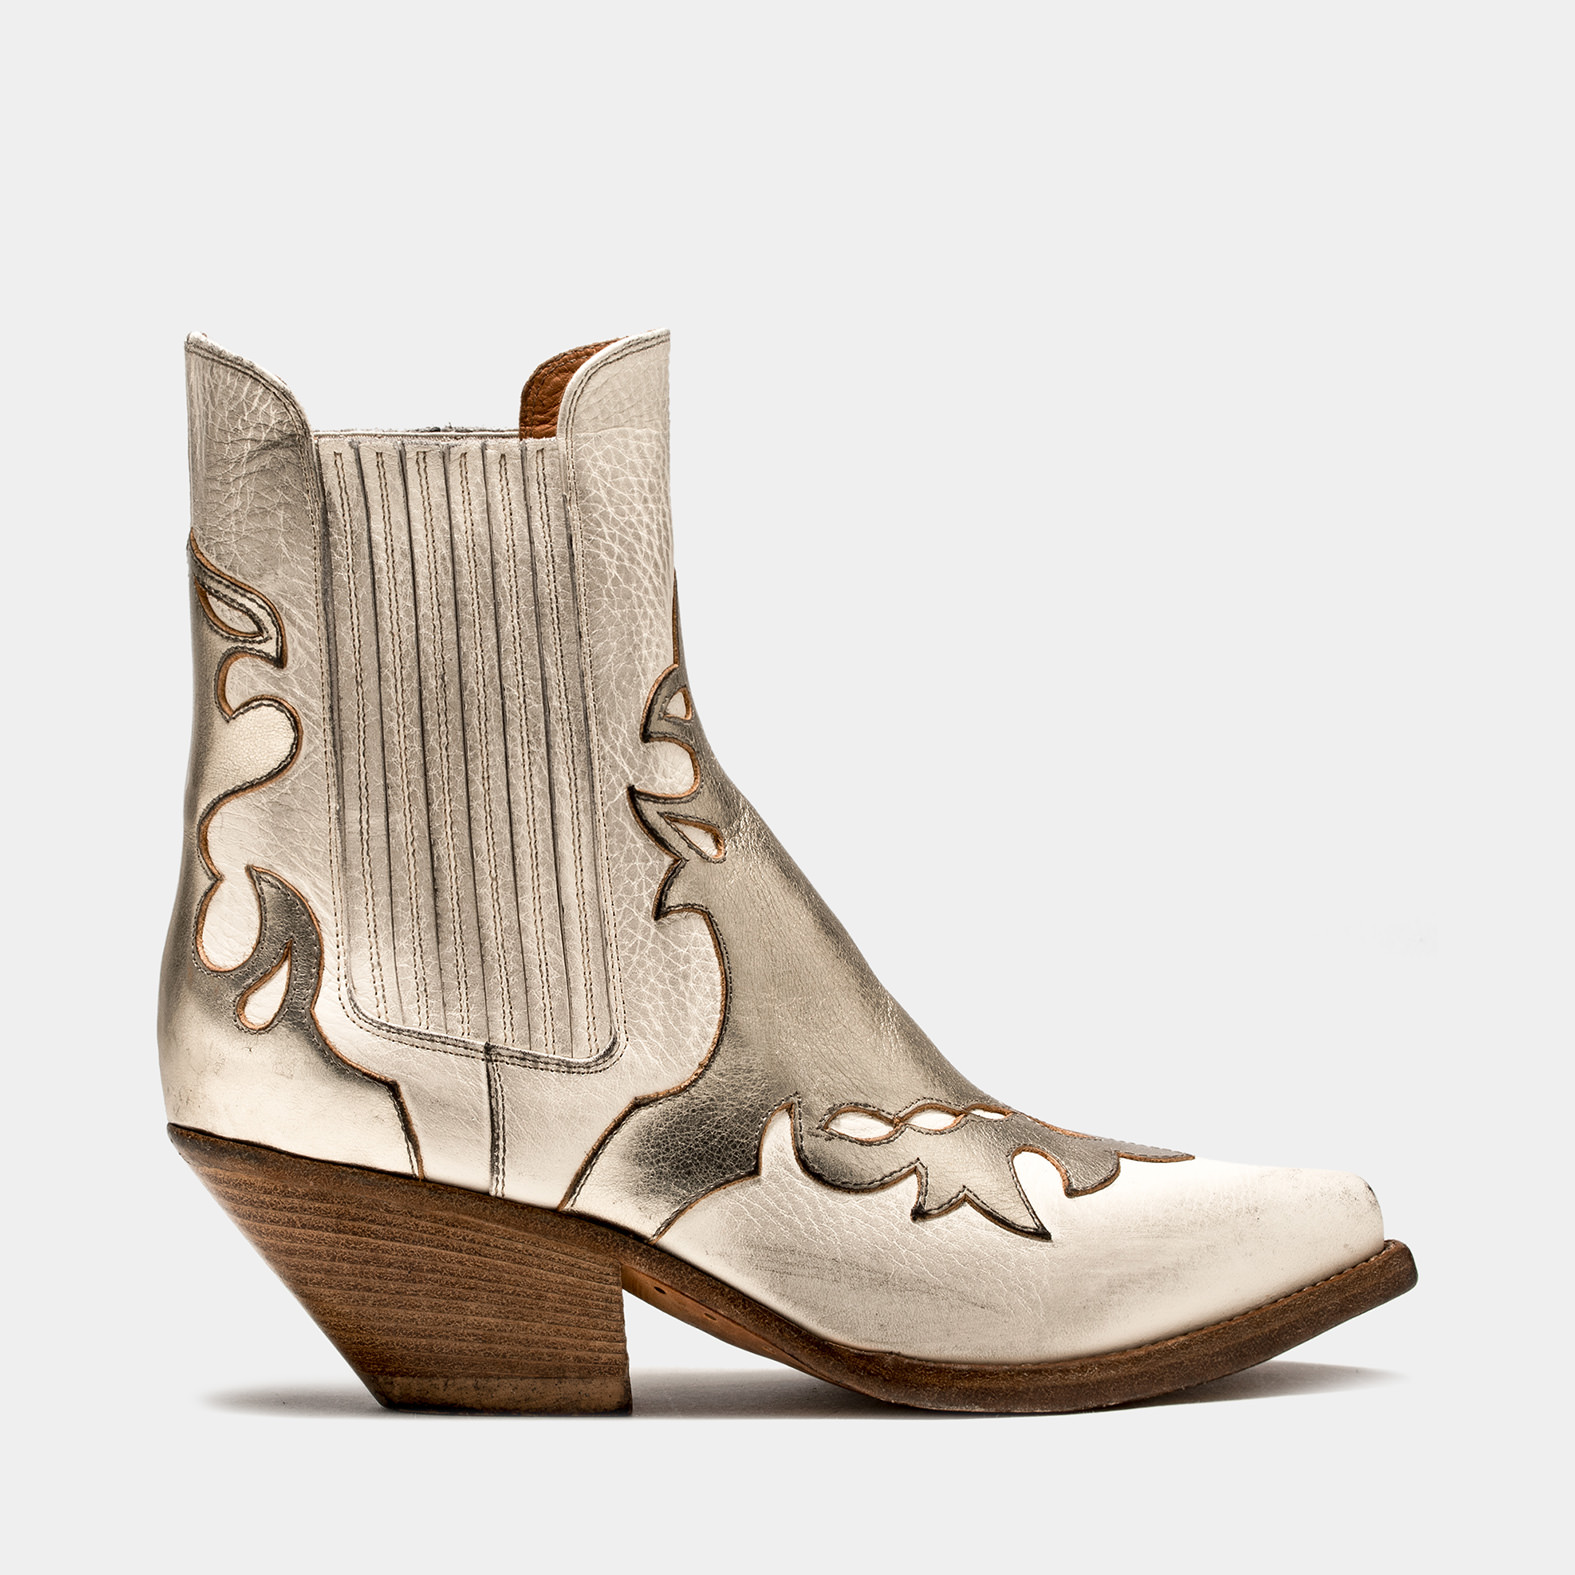 BUTTERO: LOW HEEL ELISE DURANGO BOOTS IN USED-EFFECT CREAM WHITE LEATHER WITH INLAYS